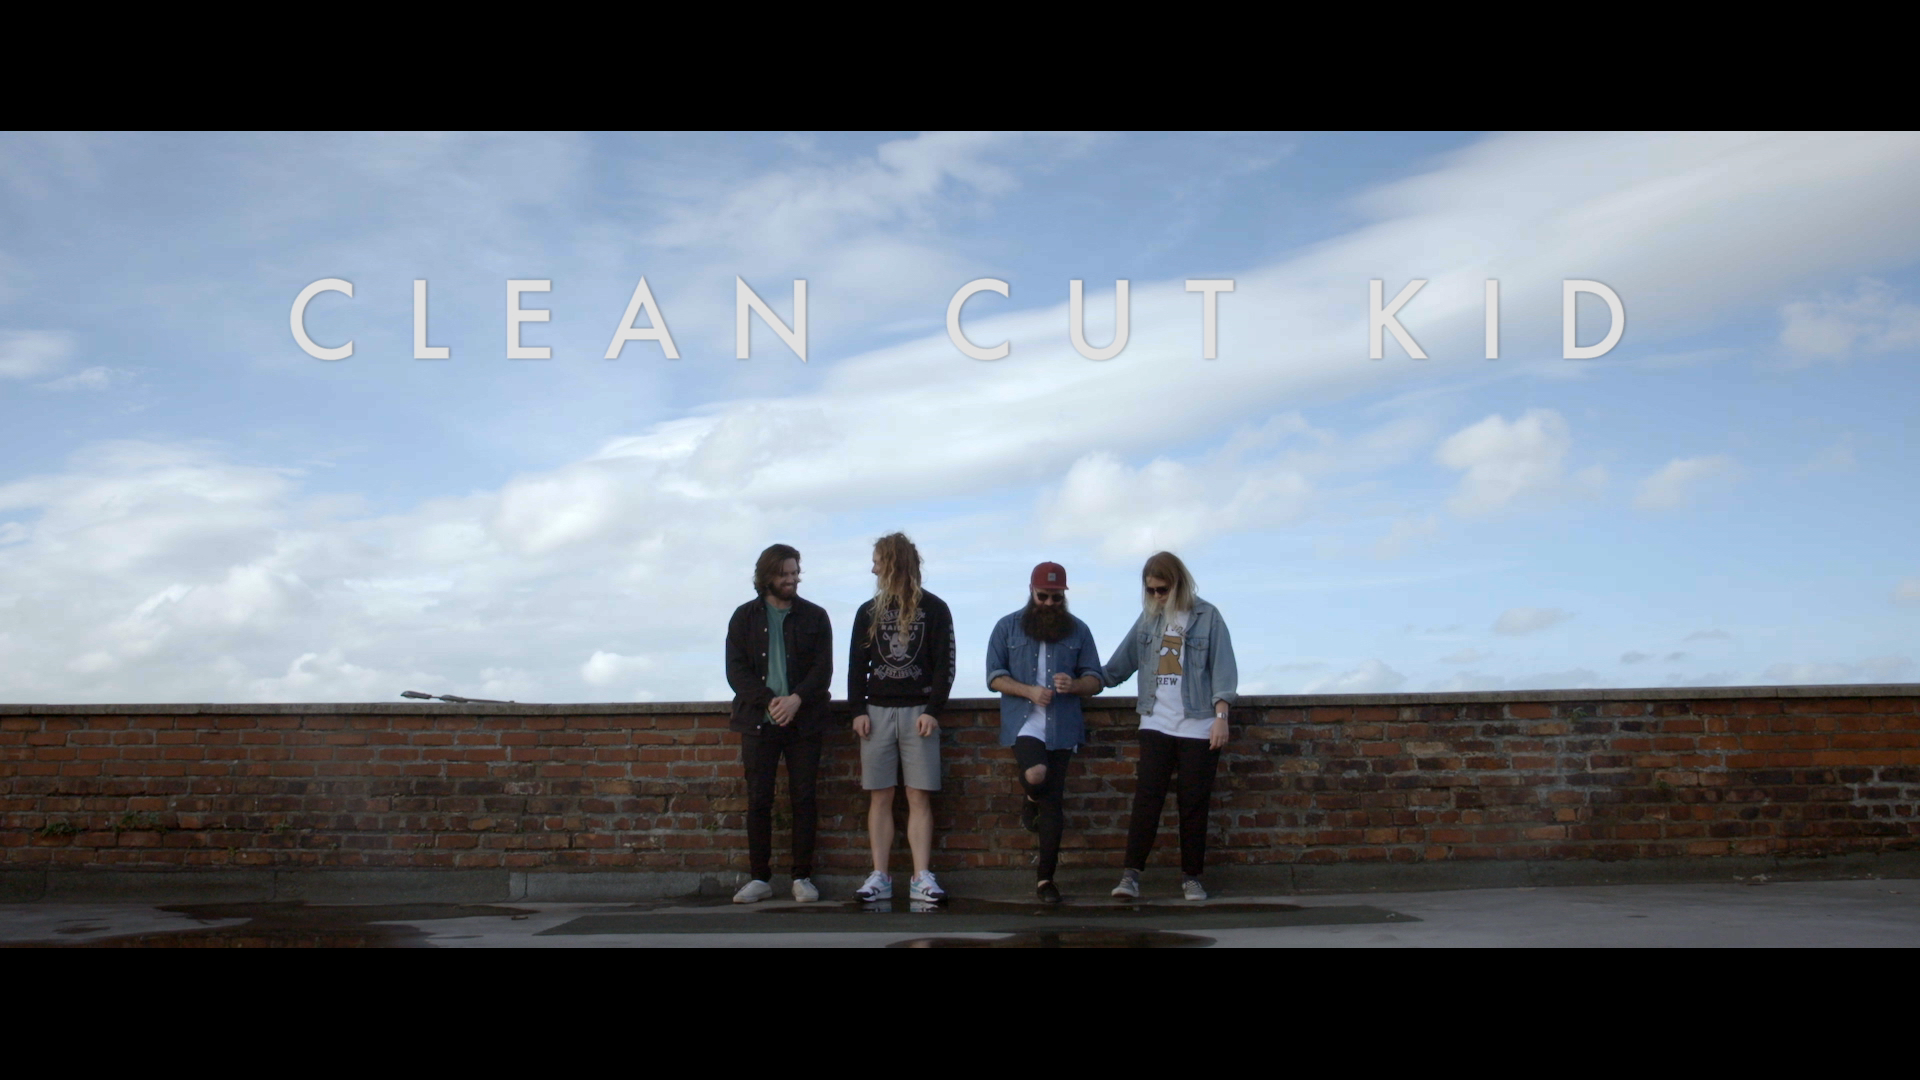 CLEAN CUT KID - DOCUMENTARY